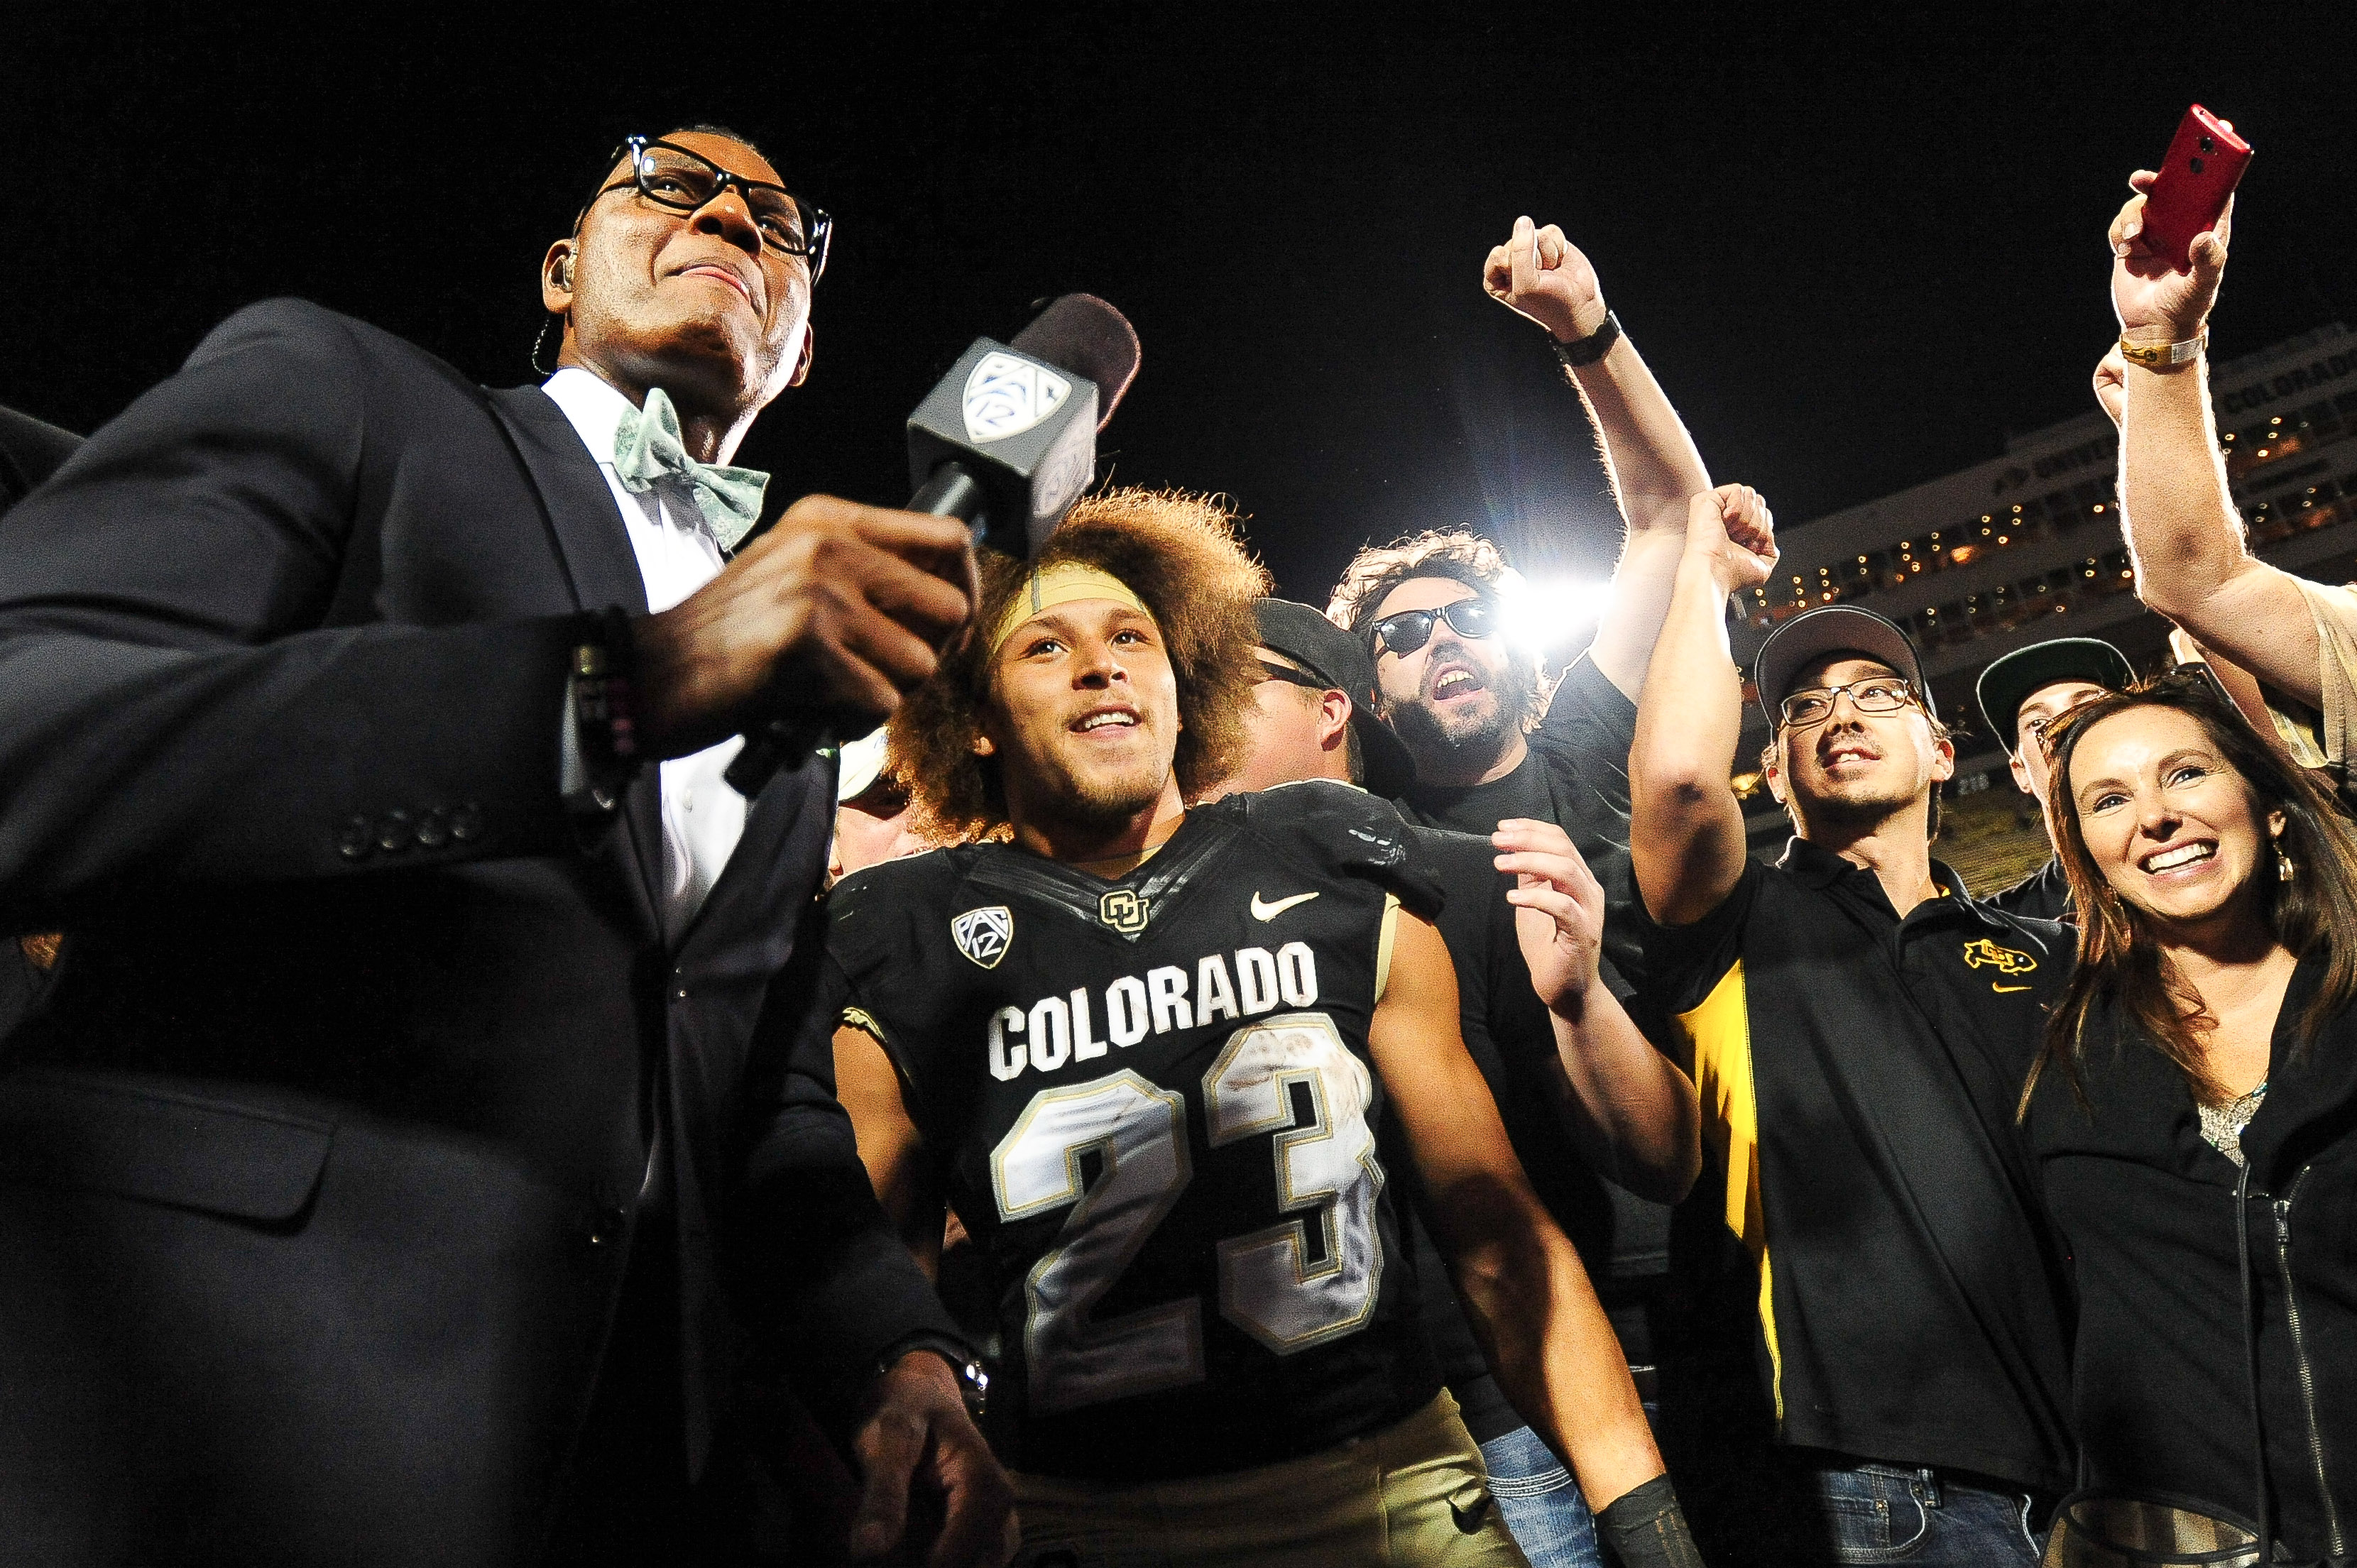 BOULDER, CO - OCTOBER 15: Colorado Buffaloes running back Phillip Lindsay #23 gives an interview after a 40-16 win over the Arizona State Sun Devils at Folsom Field on October 15, 2016 in Boulder, Colorado. (Photo by Dustin Bradford/Getty Images)